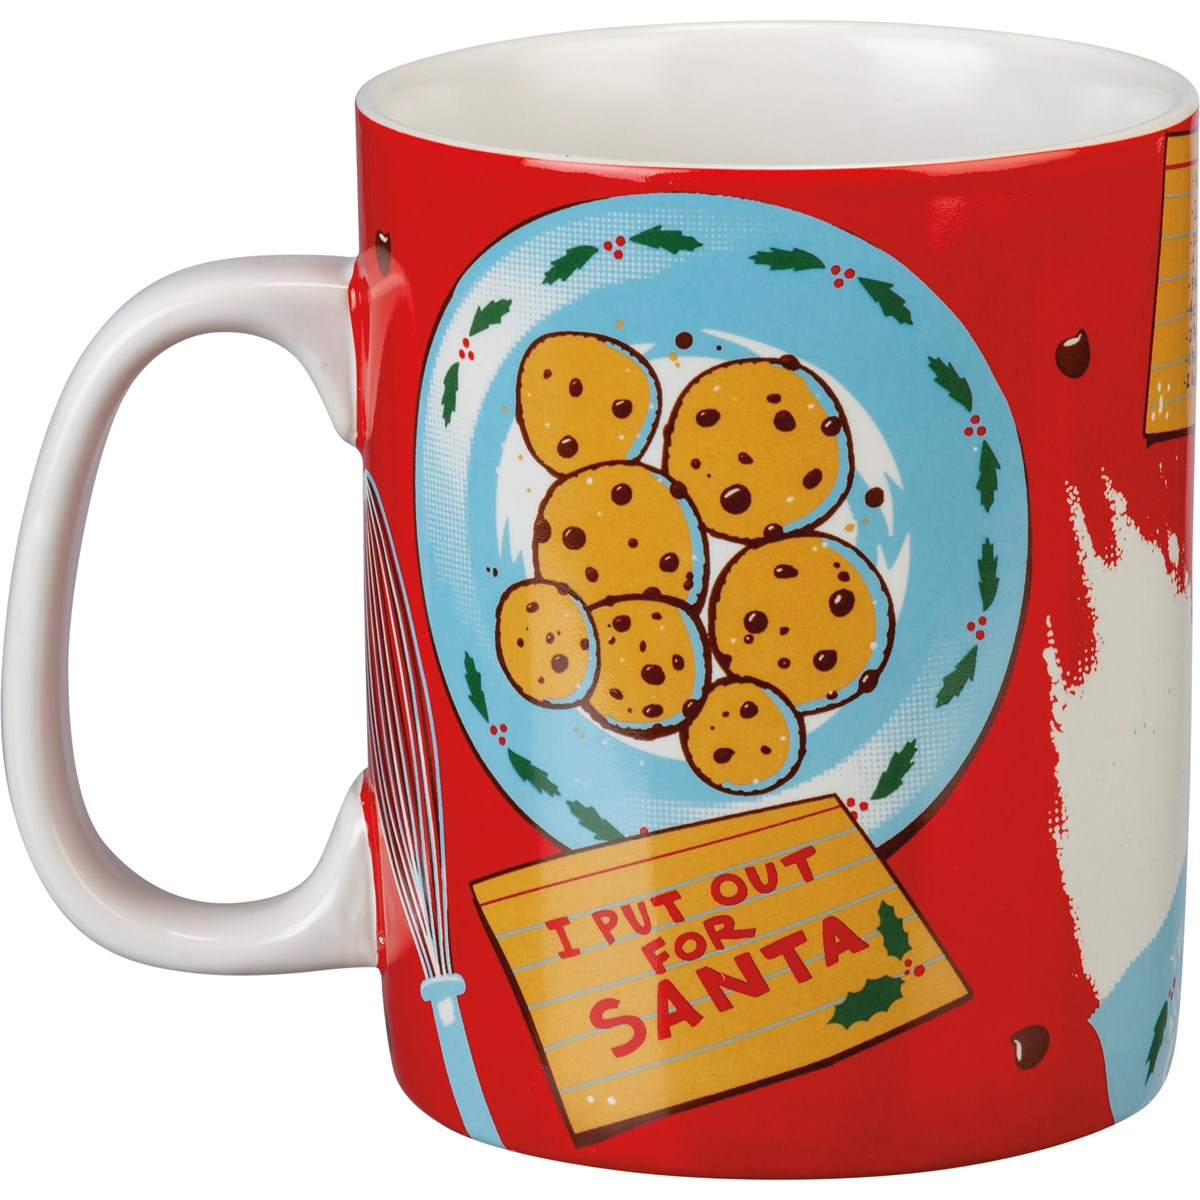 Mug - I Put Out For Santa - 20 oz. - Stoneware